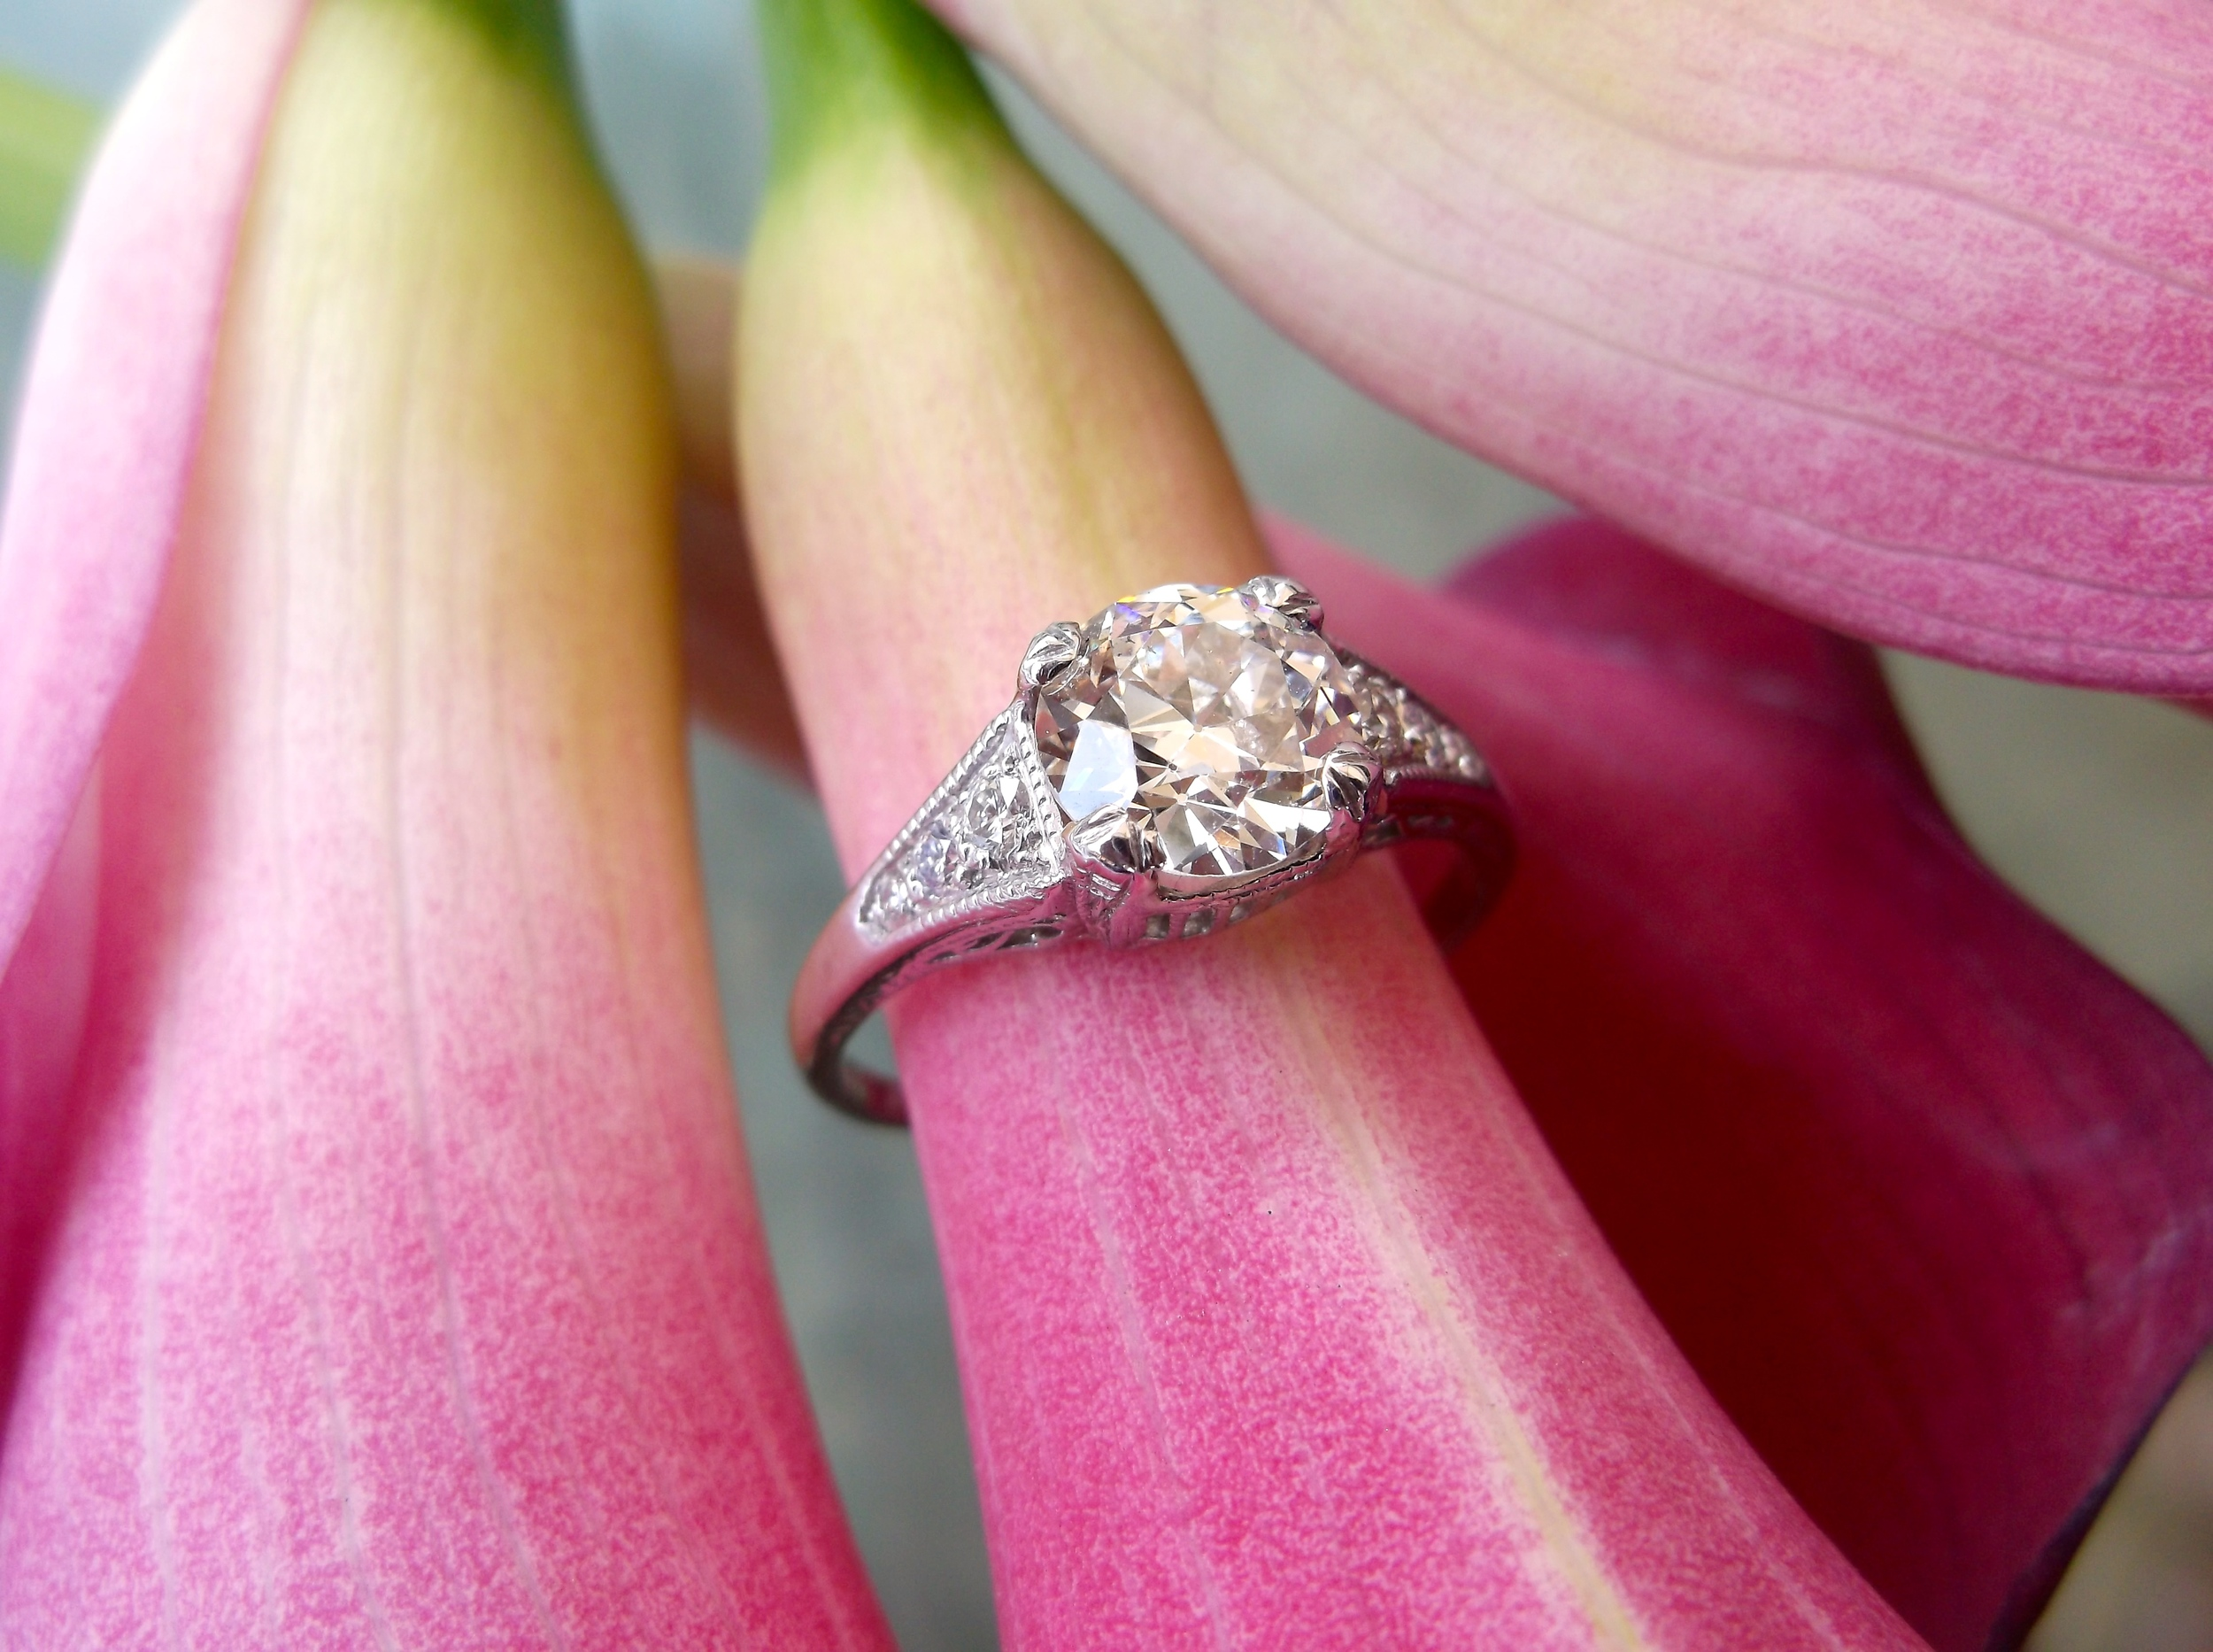 SOLD - Exquisite 1920's 1.30 carat Old European cut diamond set in a beautiful diamond and platinum mounting.